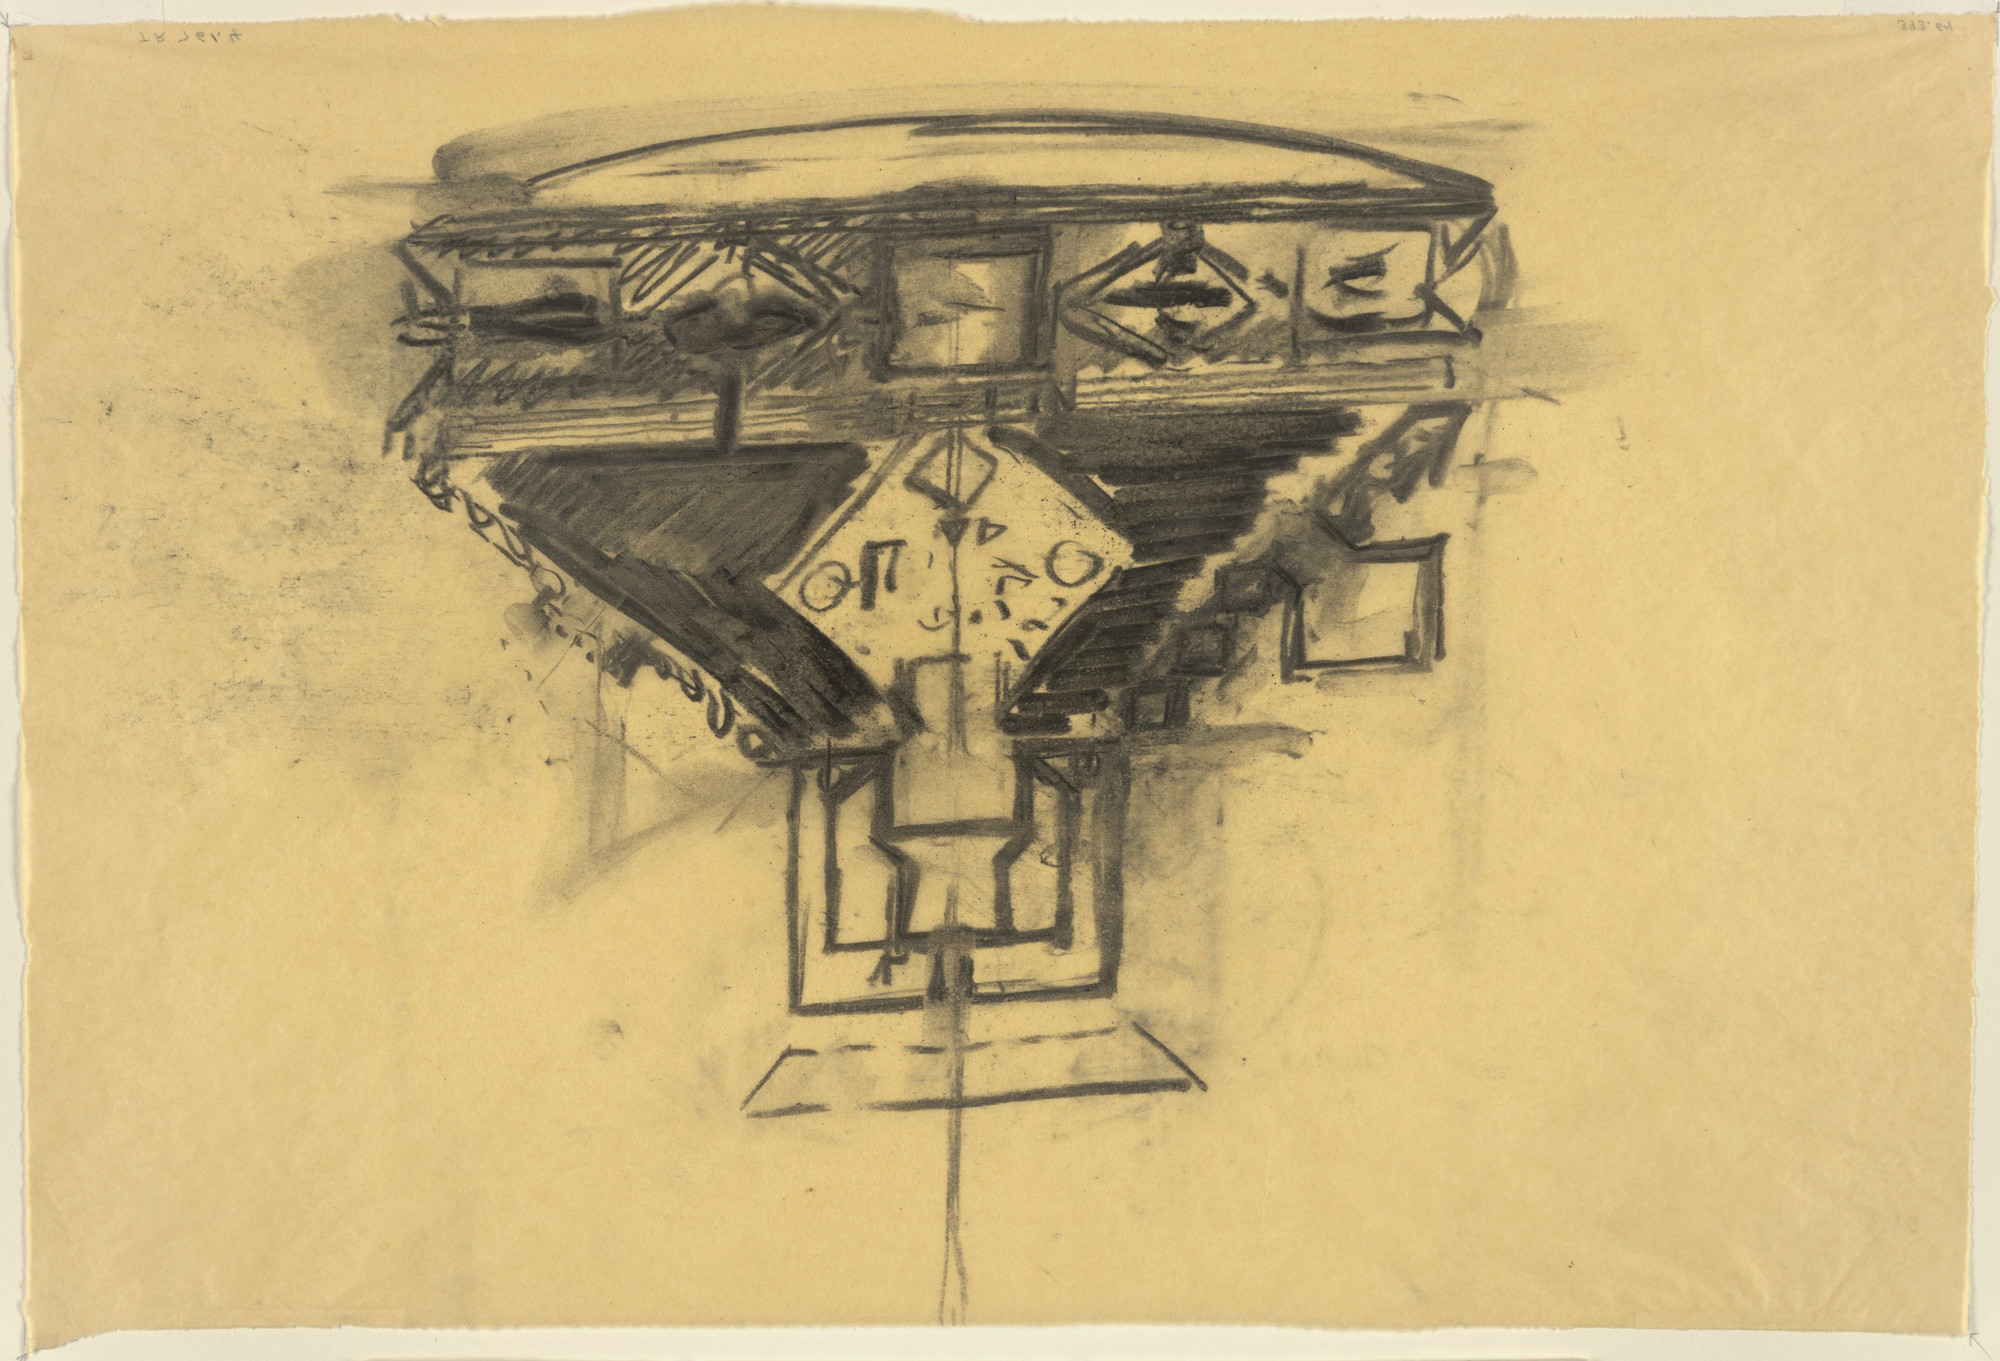 Louis I. Kahn. Sher-e-Bangla Nagar, Capital of Bangladesh, Dhaka, Bangladesh (Plan sketch). 1963